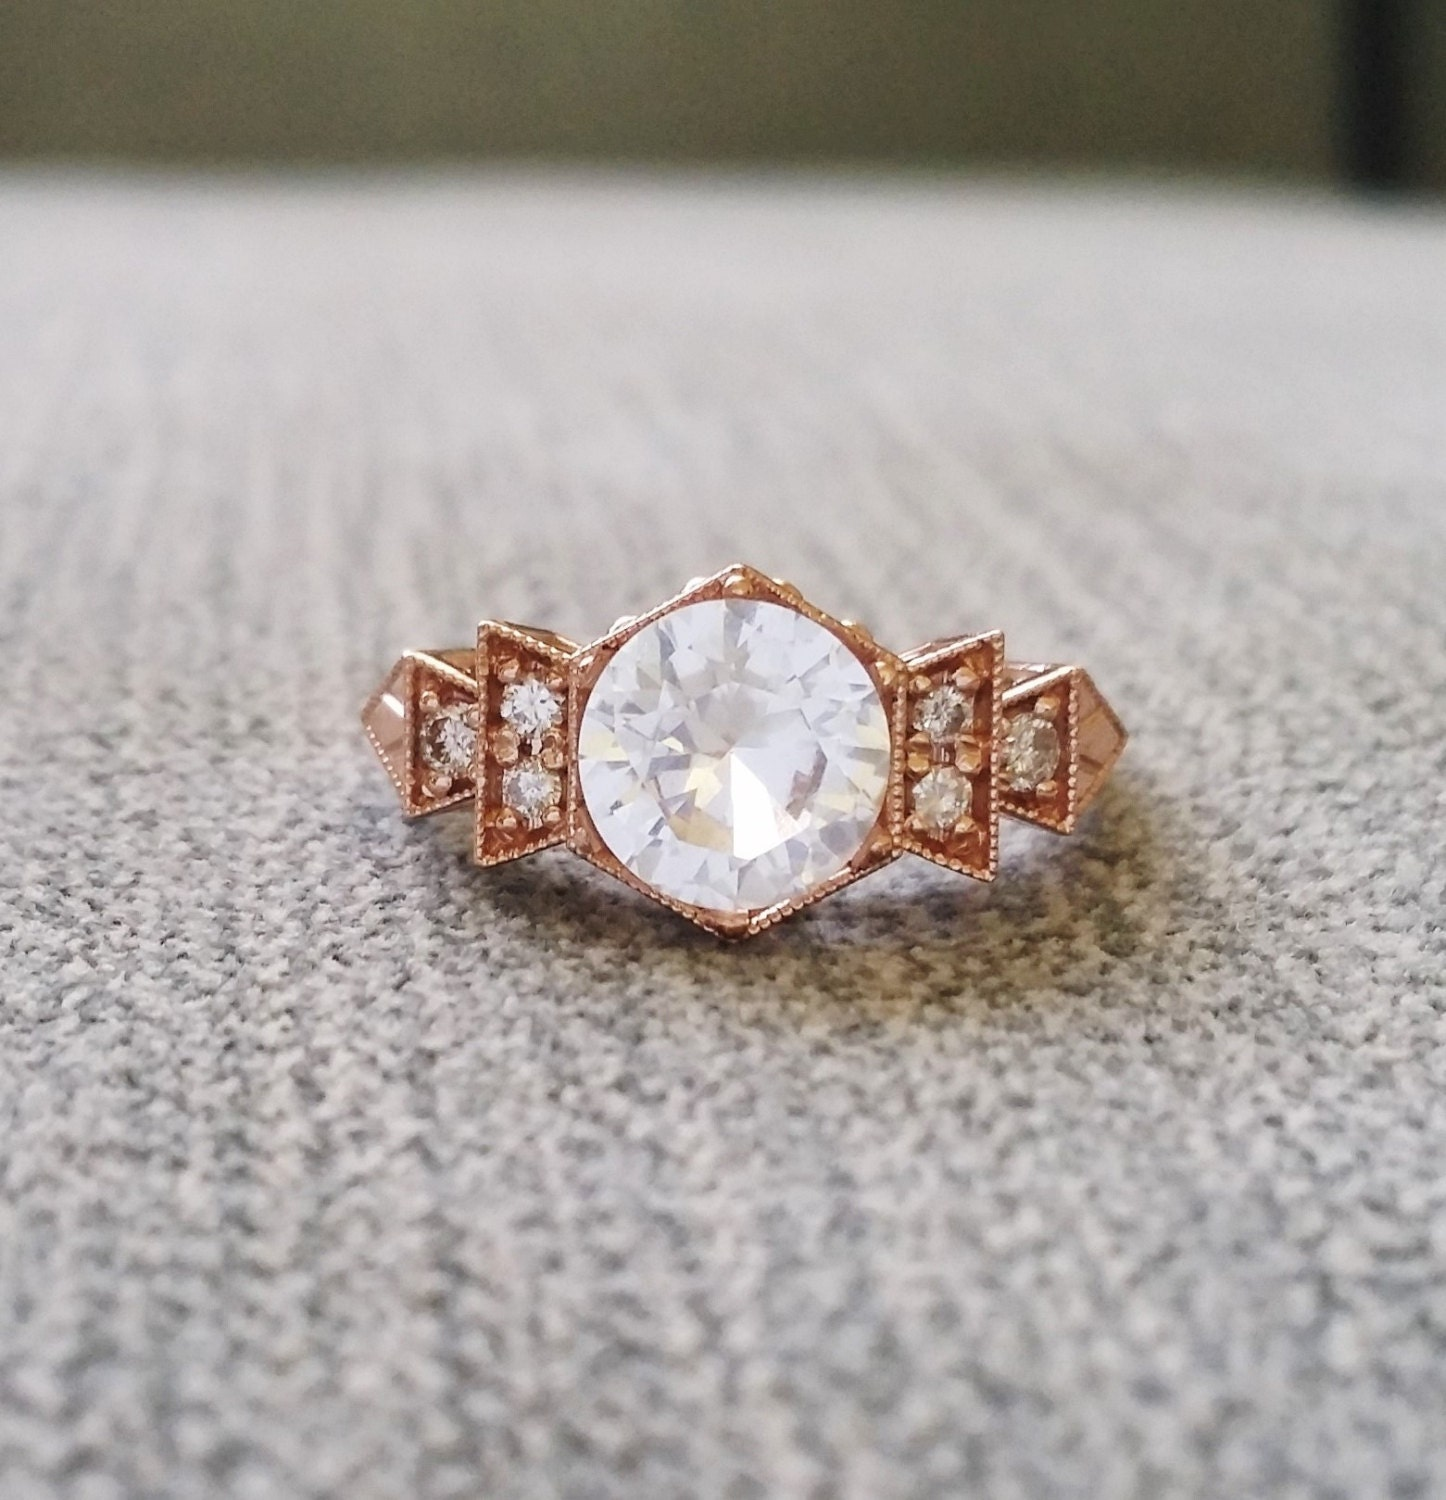 that edwardian vintage edwardianengagementringsantique engagement rings bring the real look antique